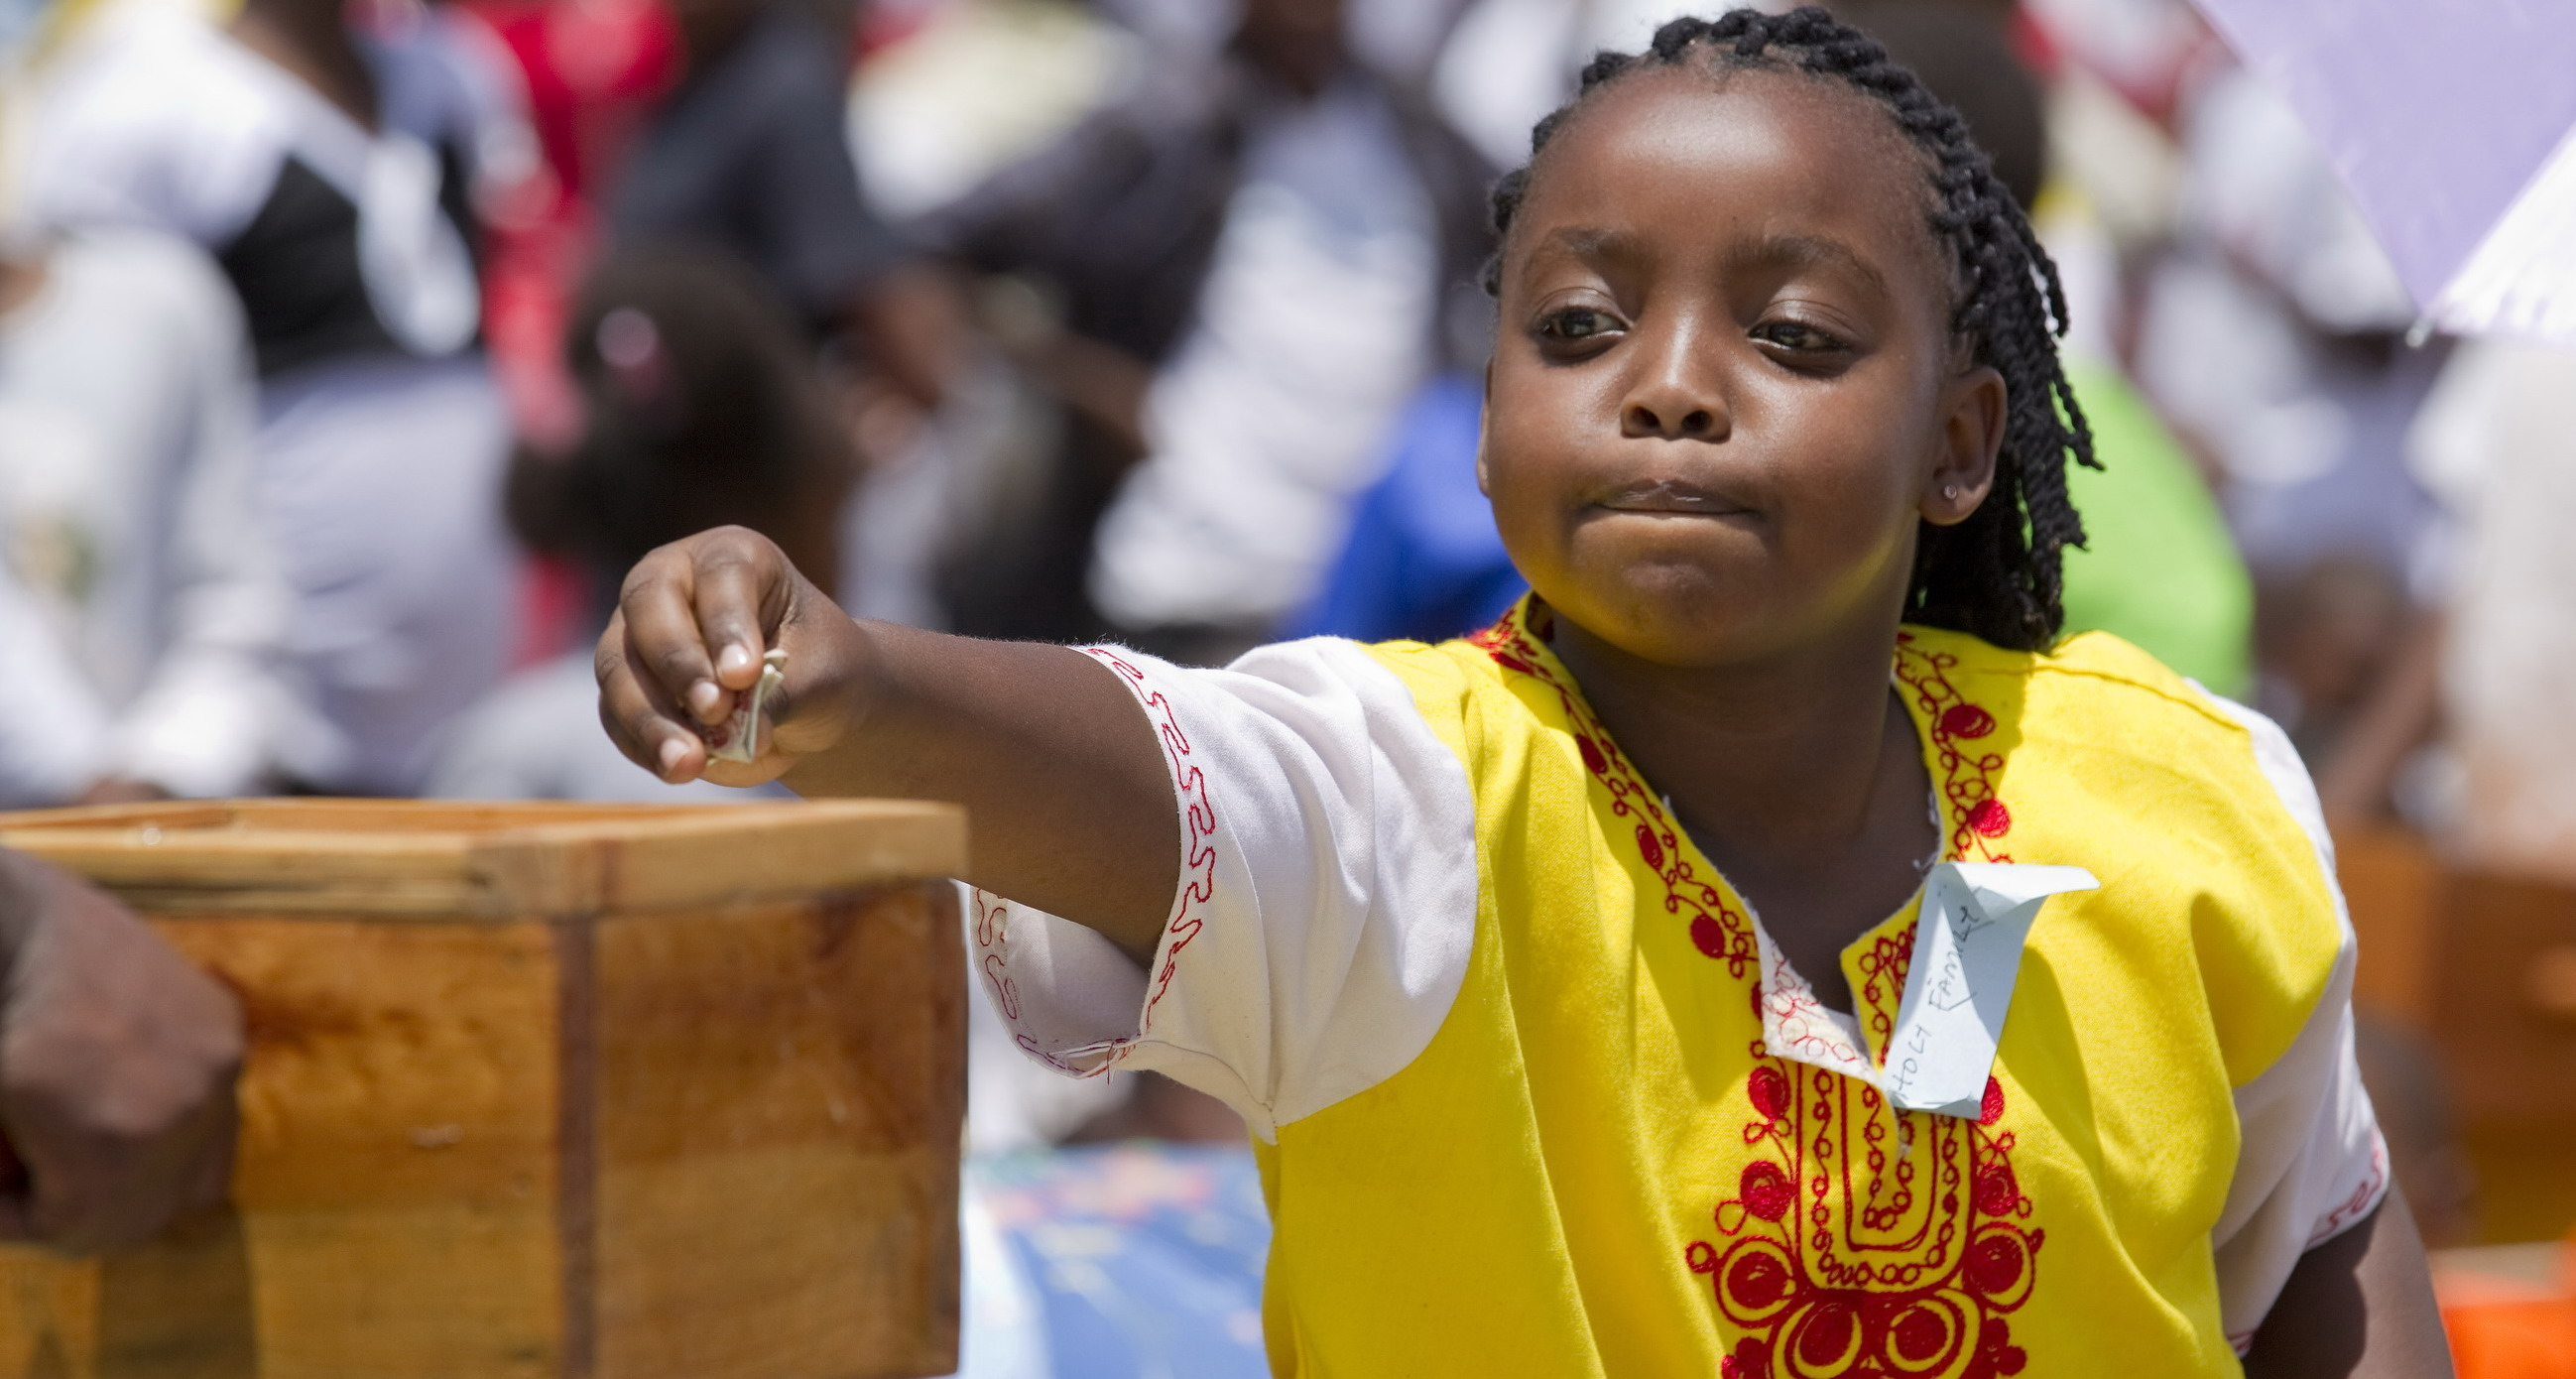 A girl makes an offering during Mass marking Missionary Childhood Day in Nairobi, Kenya, Feb. 19. Held annually by the Pontifical Missionary Childhood society, the outdoor service drew more than 30,000 children from around the Archdiocese of Nairobi. (CNS photo/Nancy Wiechec) See KENYA-CHILDREN and KENYA-PMC